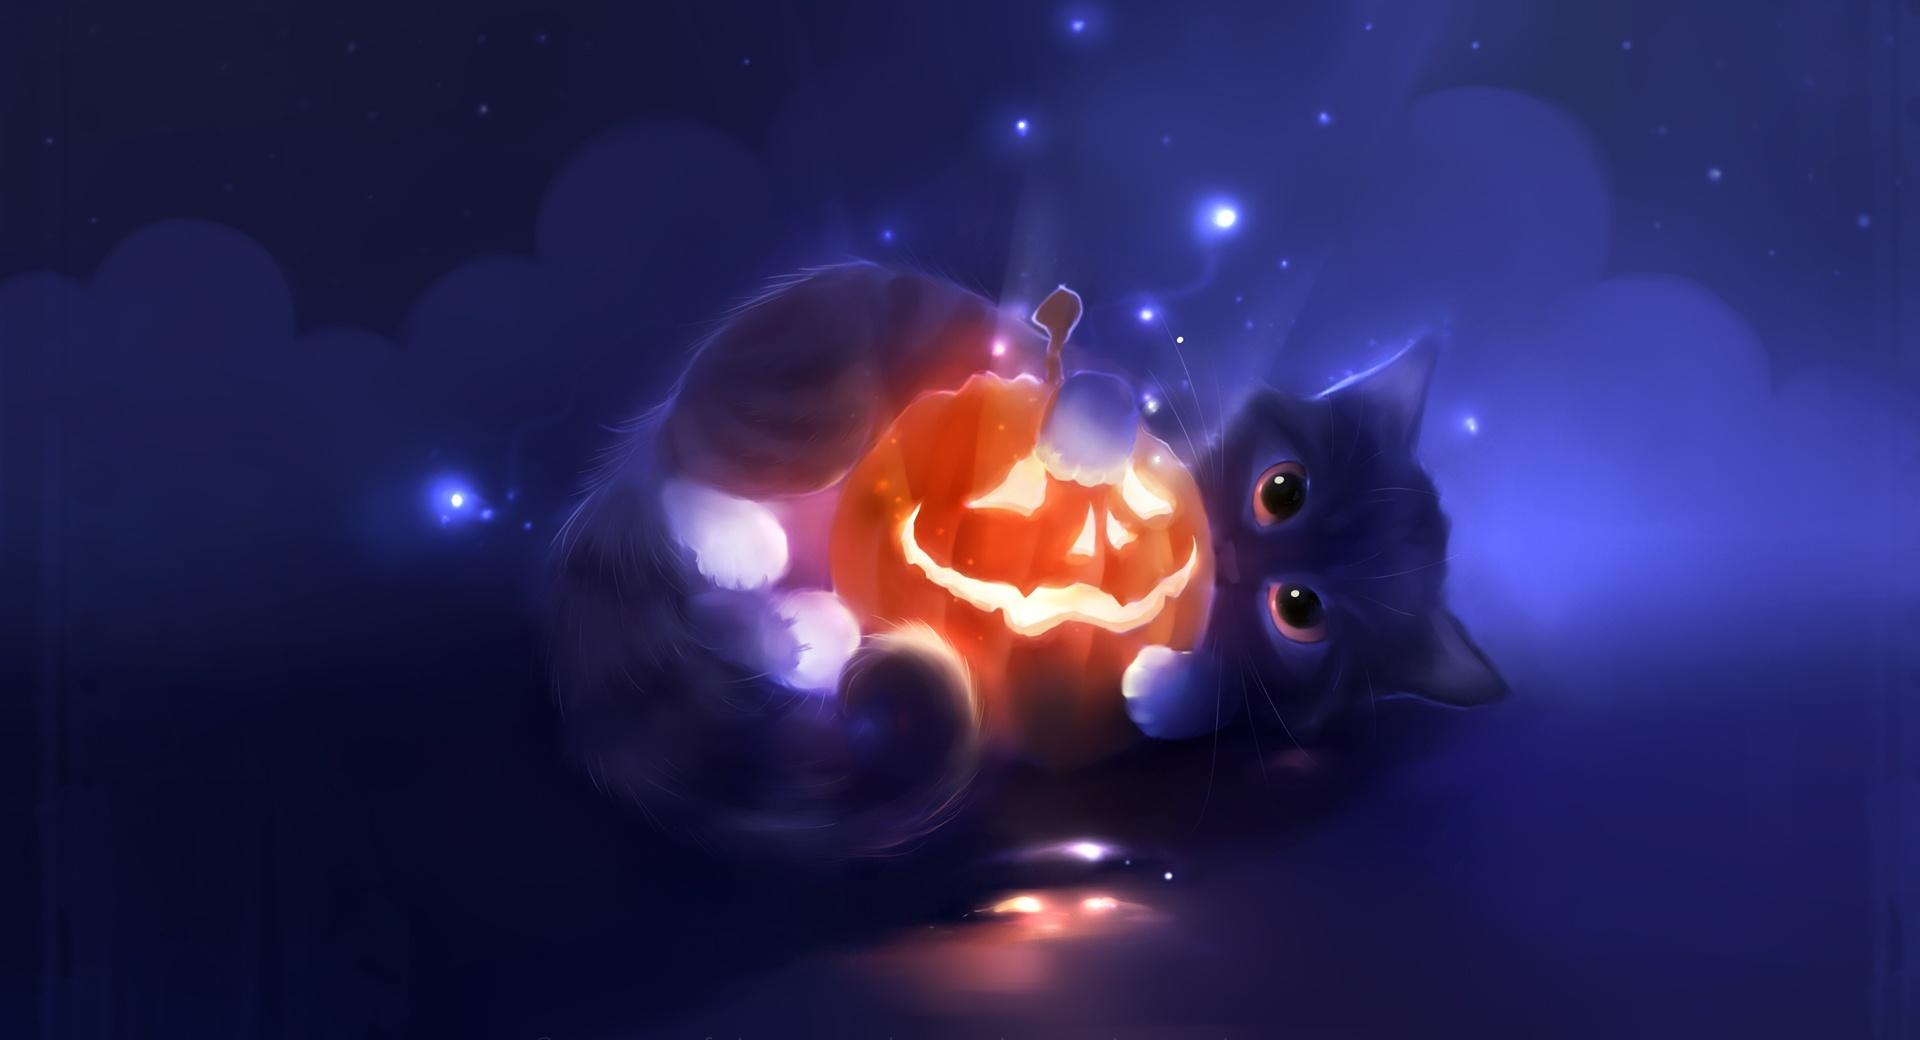 Kitty Playing With A Pumpkin wallpapers HD quality